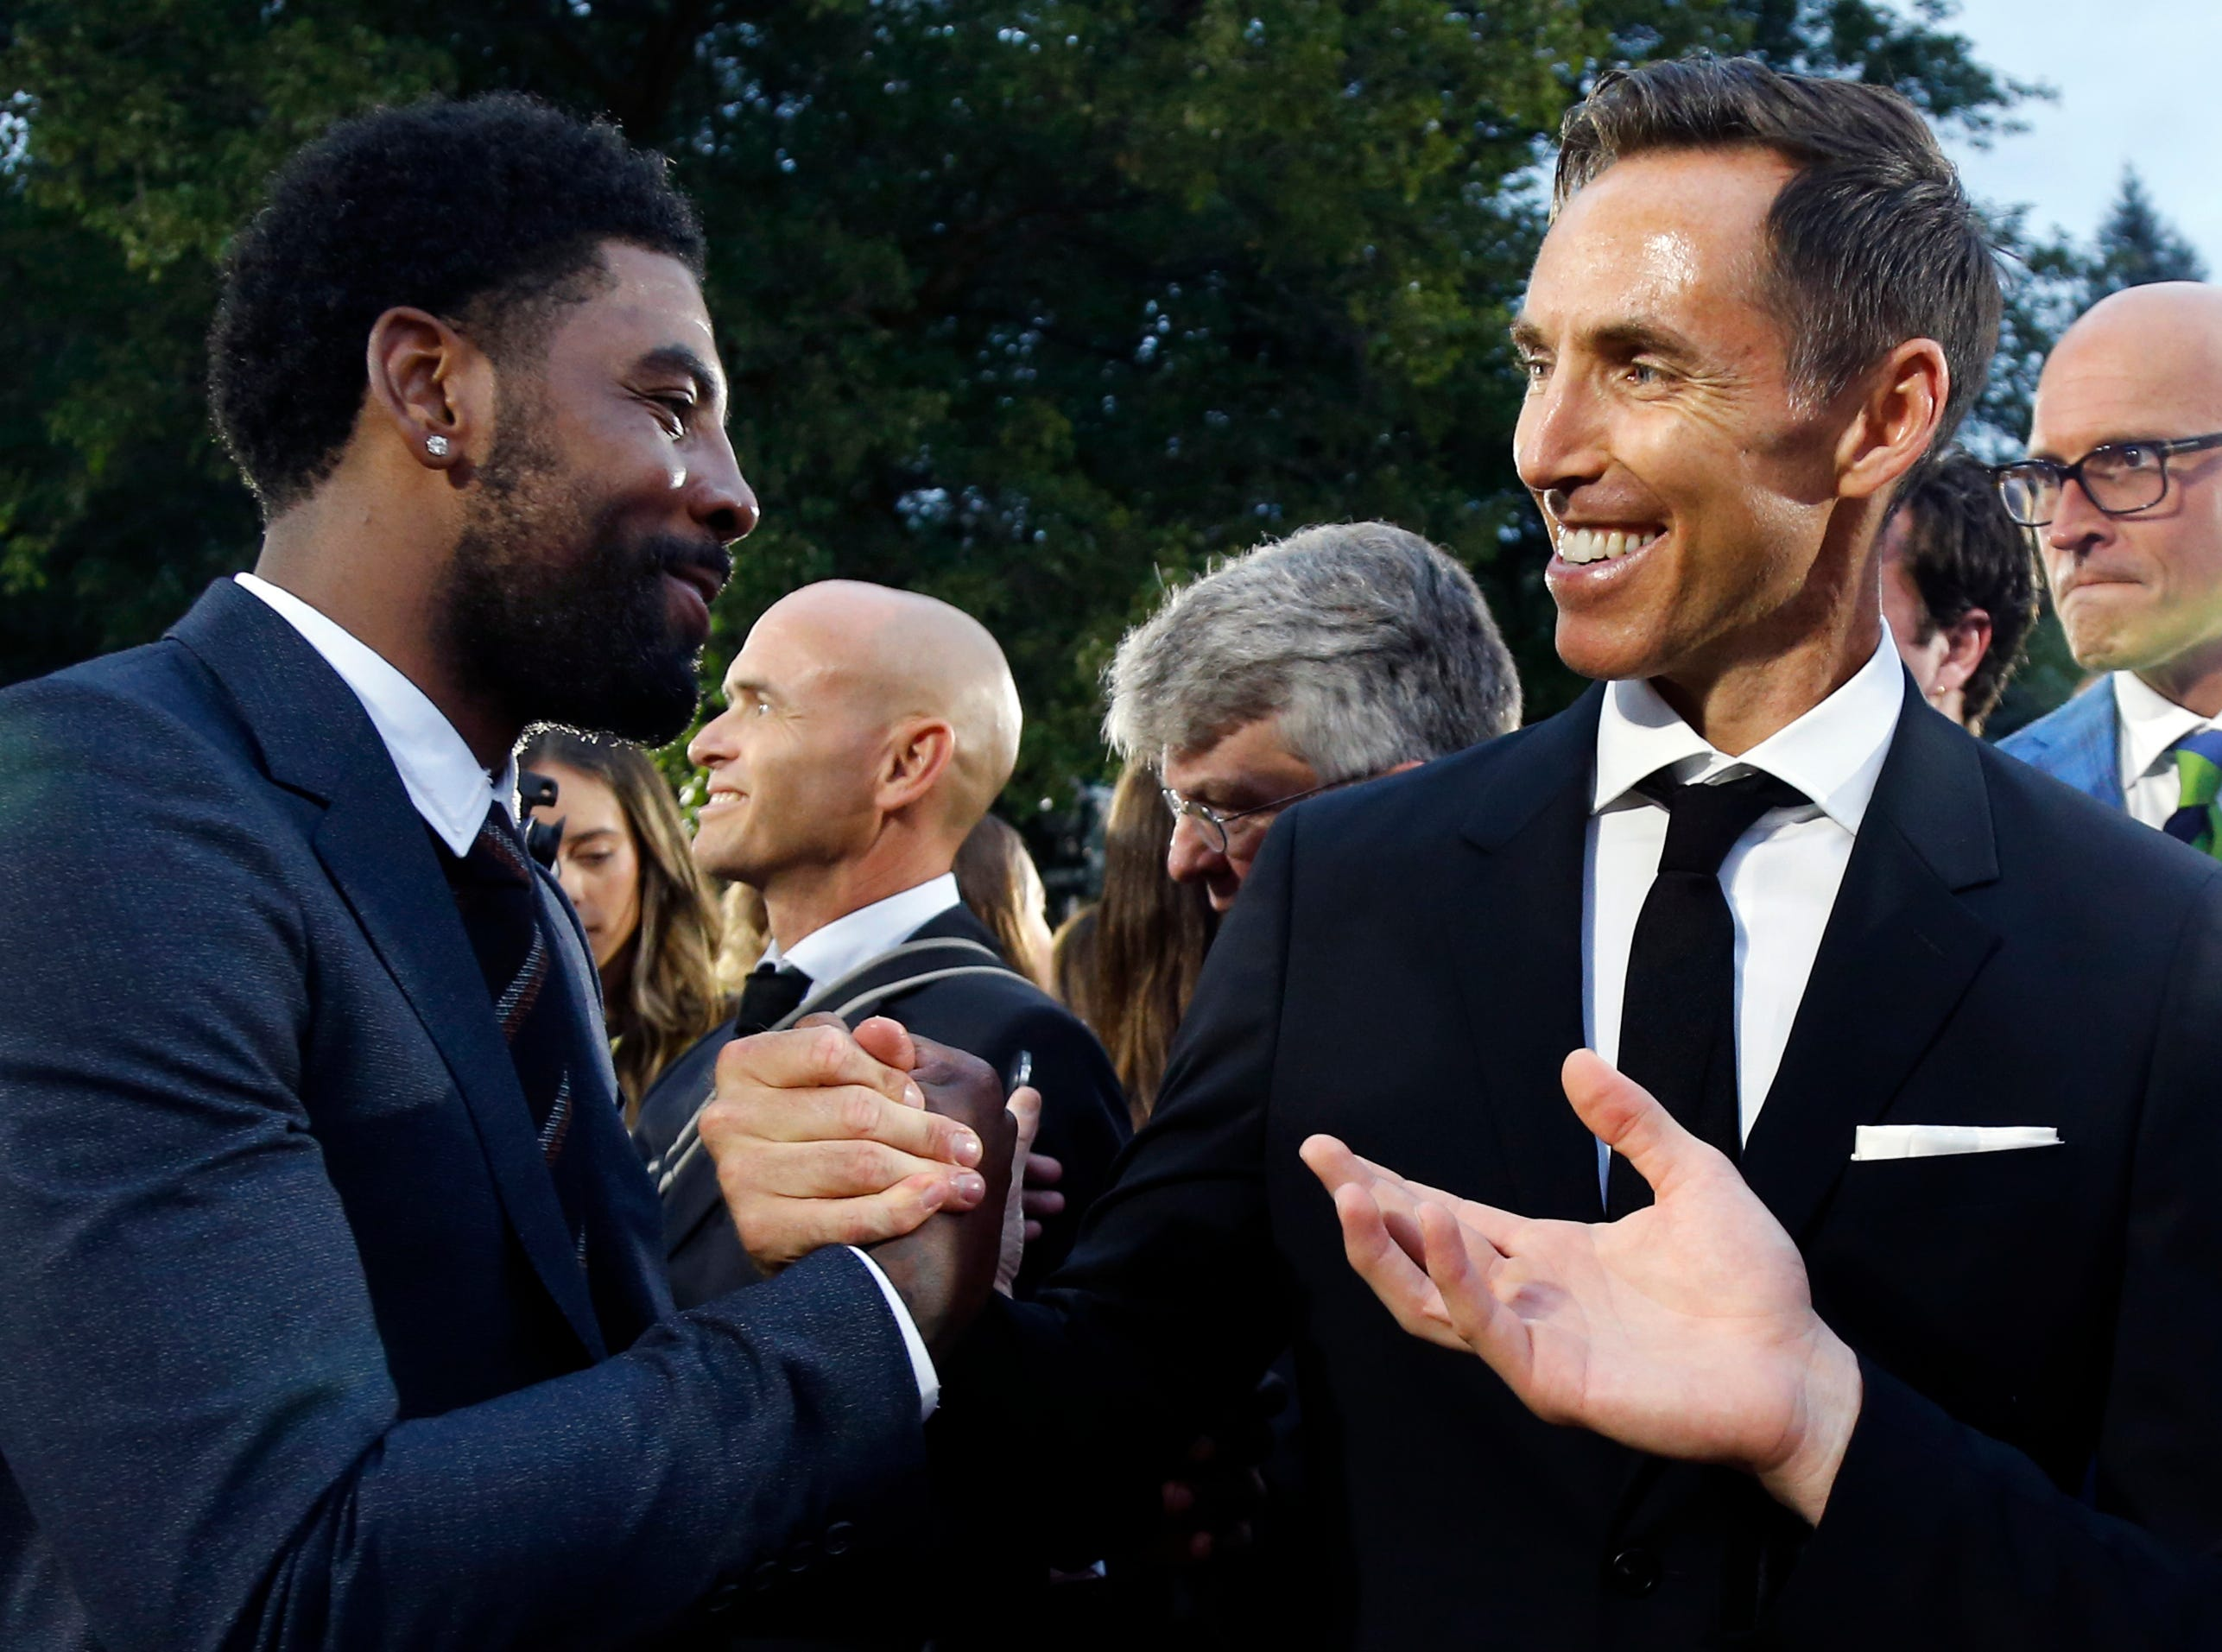 Steve Nash, right, greets Kyrie Irving on the red carpet before the induction ceremonies into the Basketball Hall of Fame.